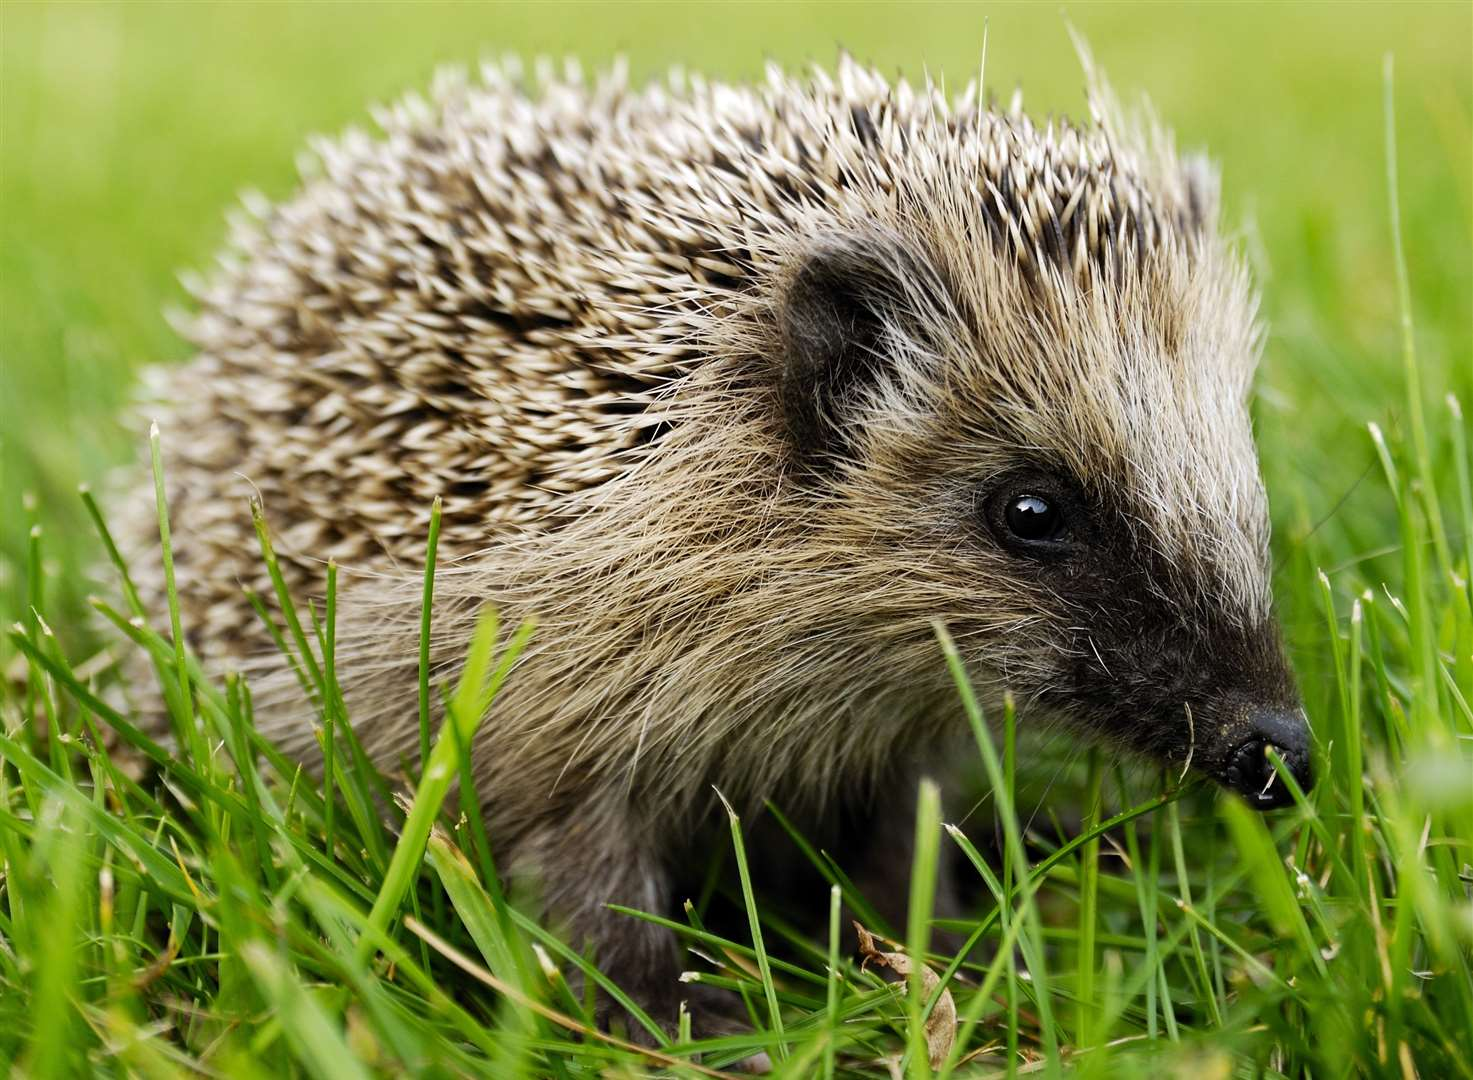 'Worrying' decline in number of hedgehogs